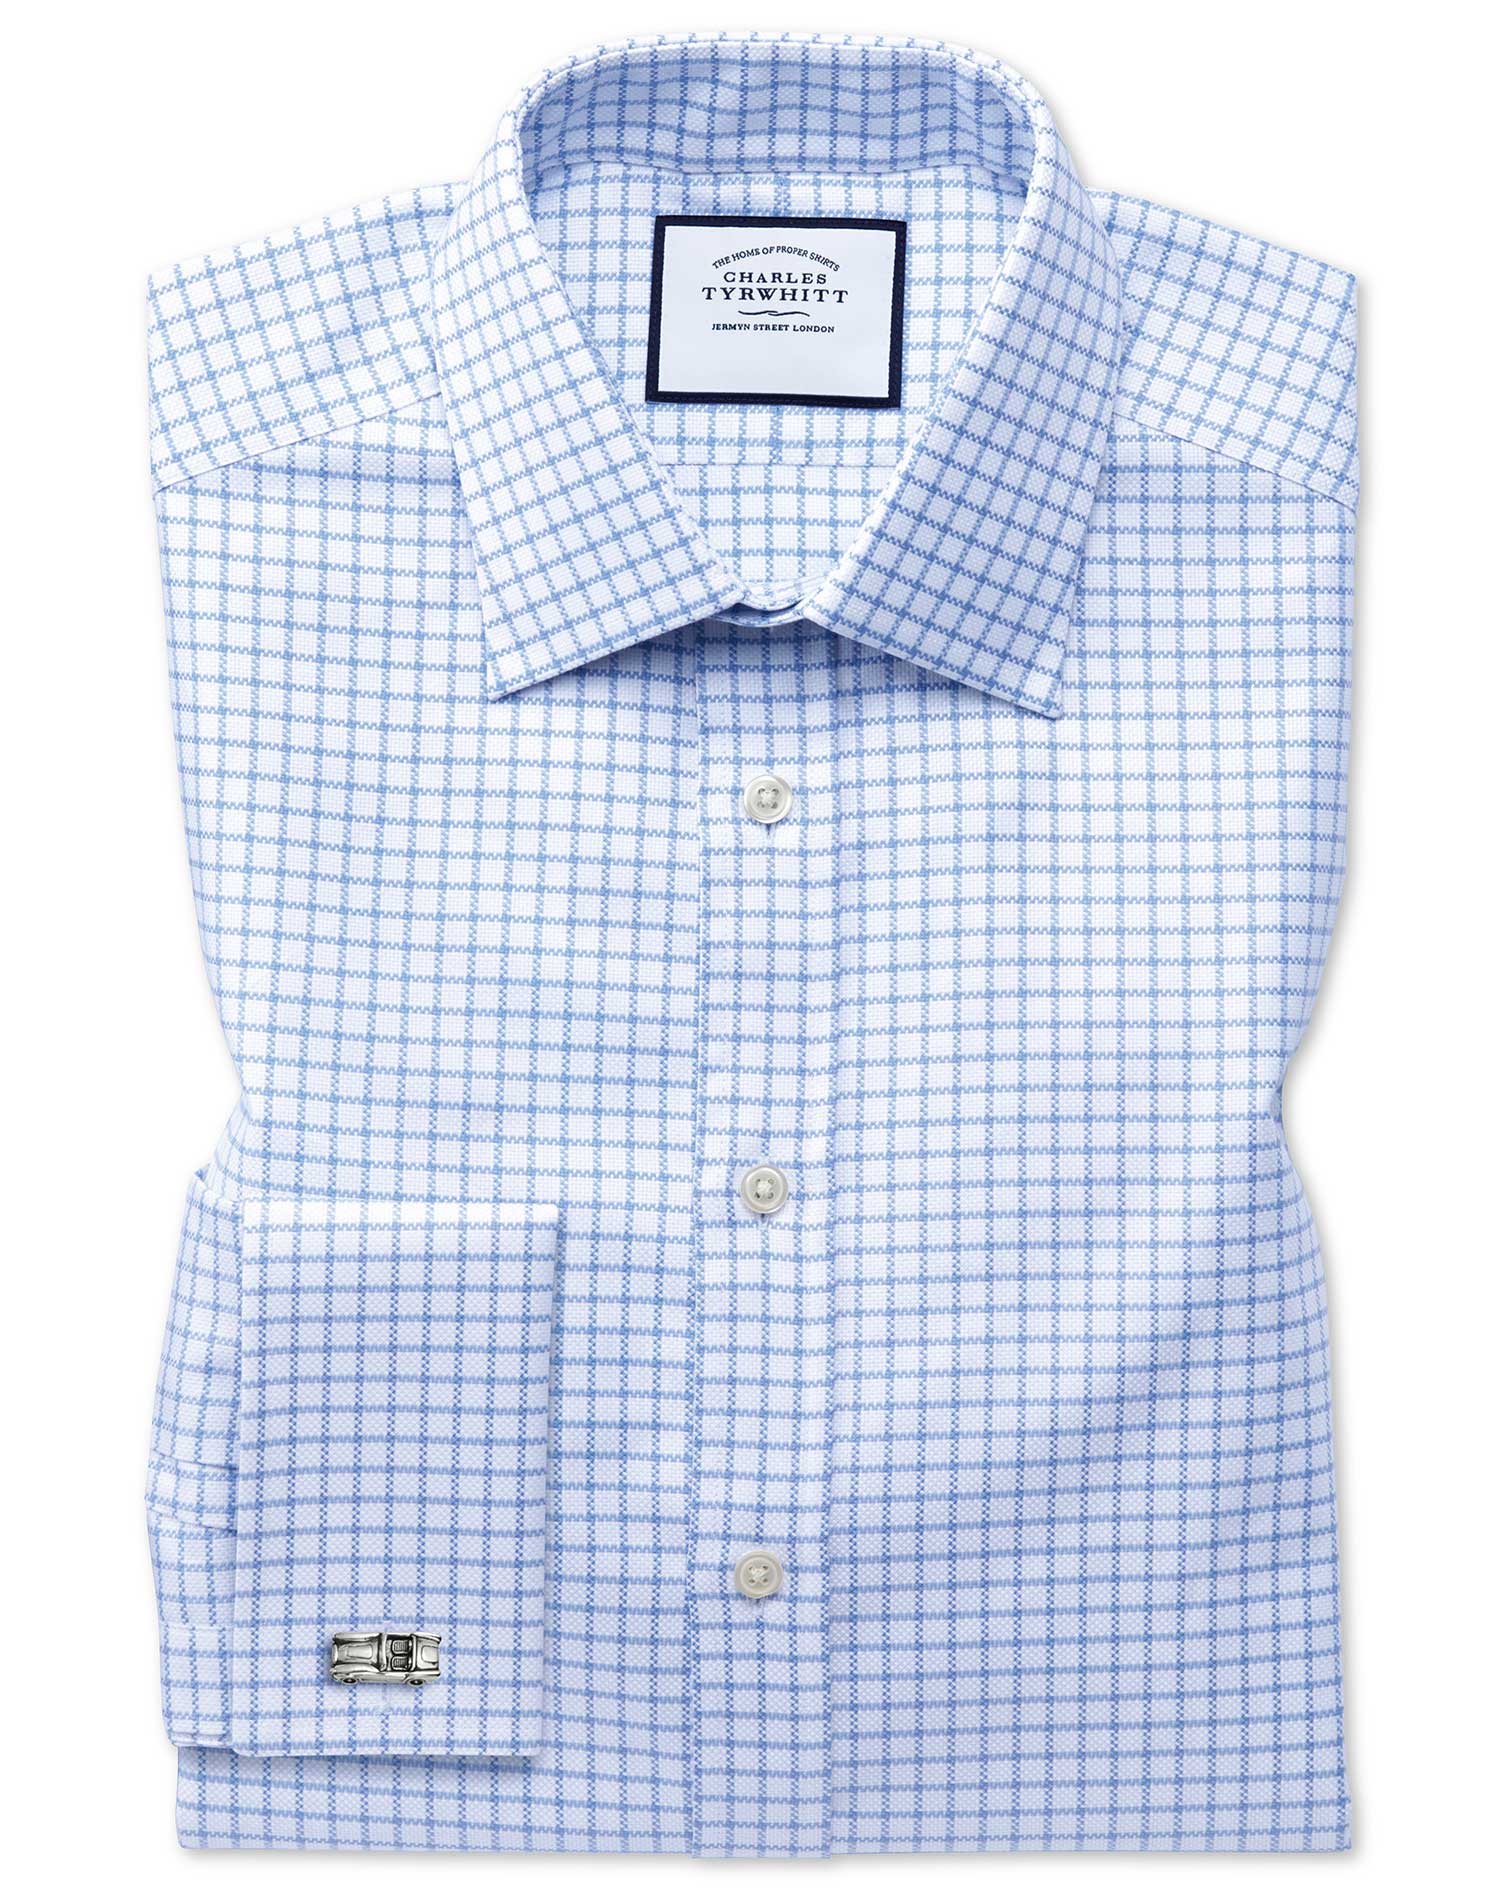 Classic Fit Egyptian Cotton Royal Oxford Sky Blue Check Formal Shirt Double Cuff Size 17.5/35 by Cha